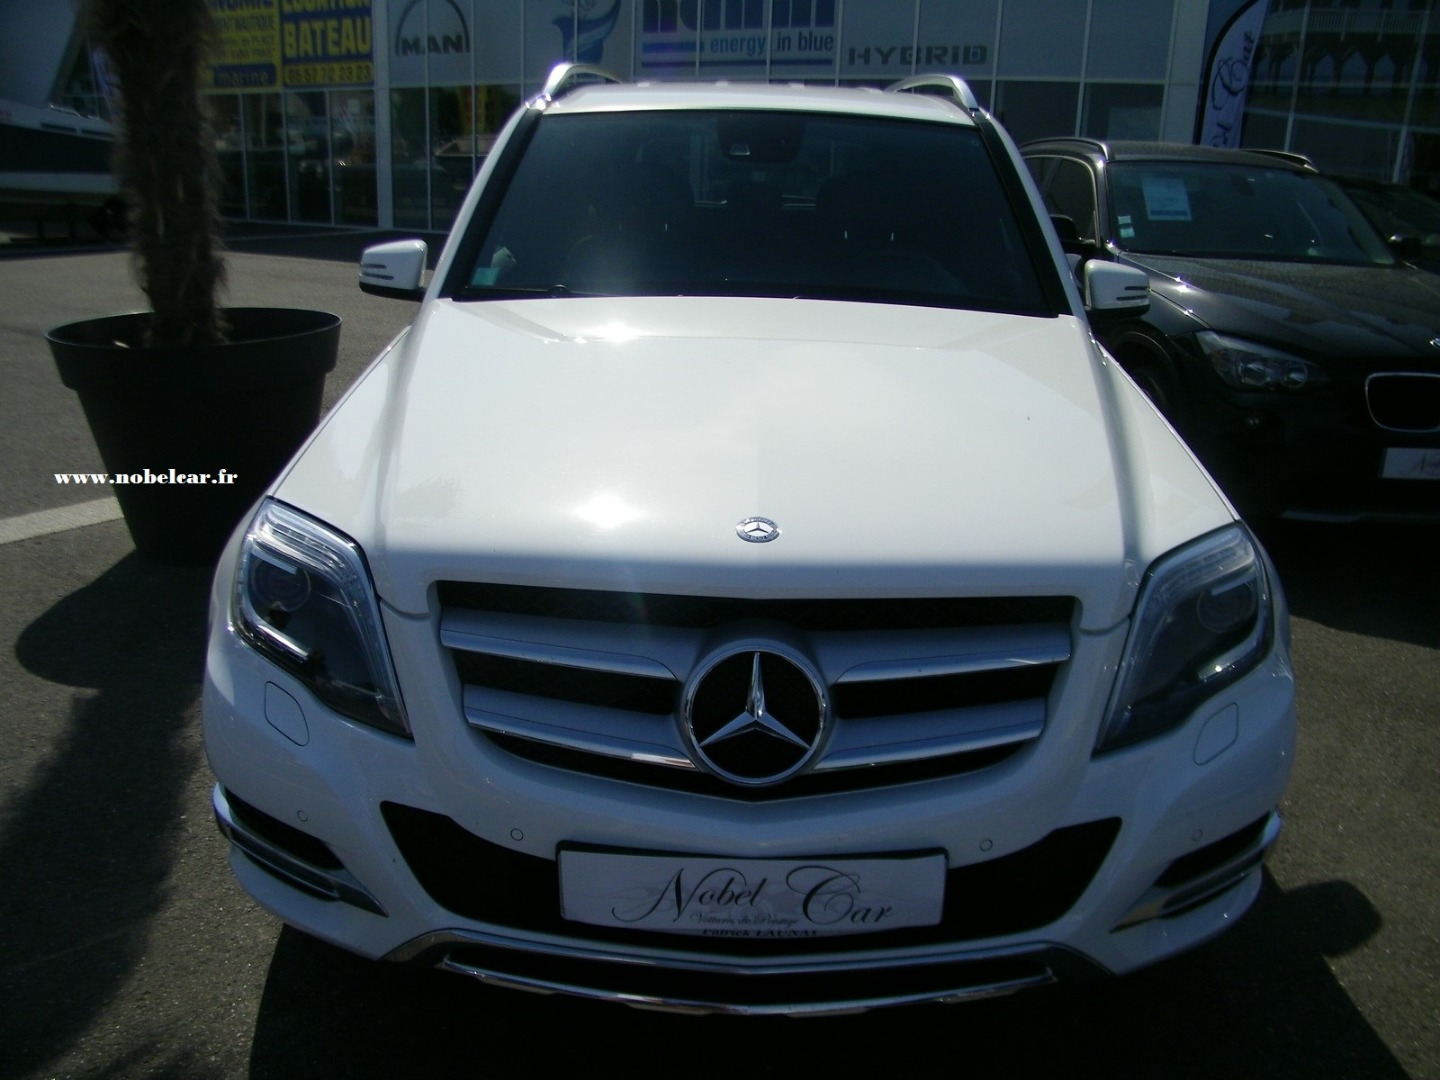 MERCEDES GLK 220 CDI SPORT 4 MATIC 7G TRONIC + D'occasion Gironde 33.